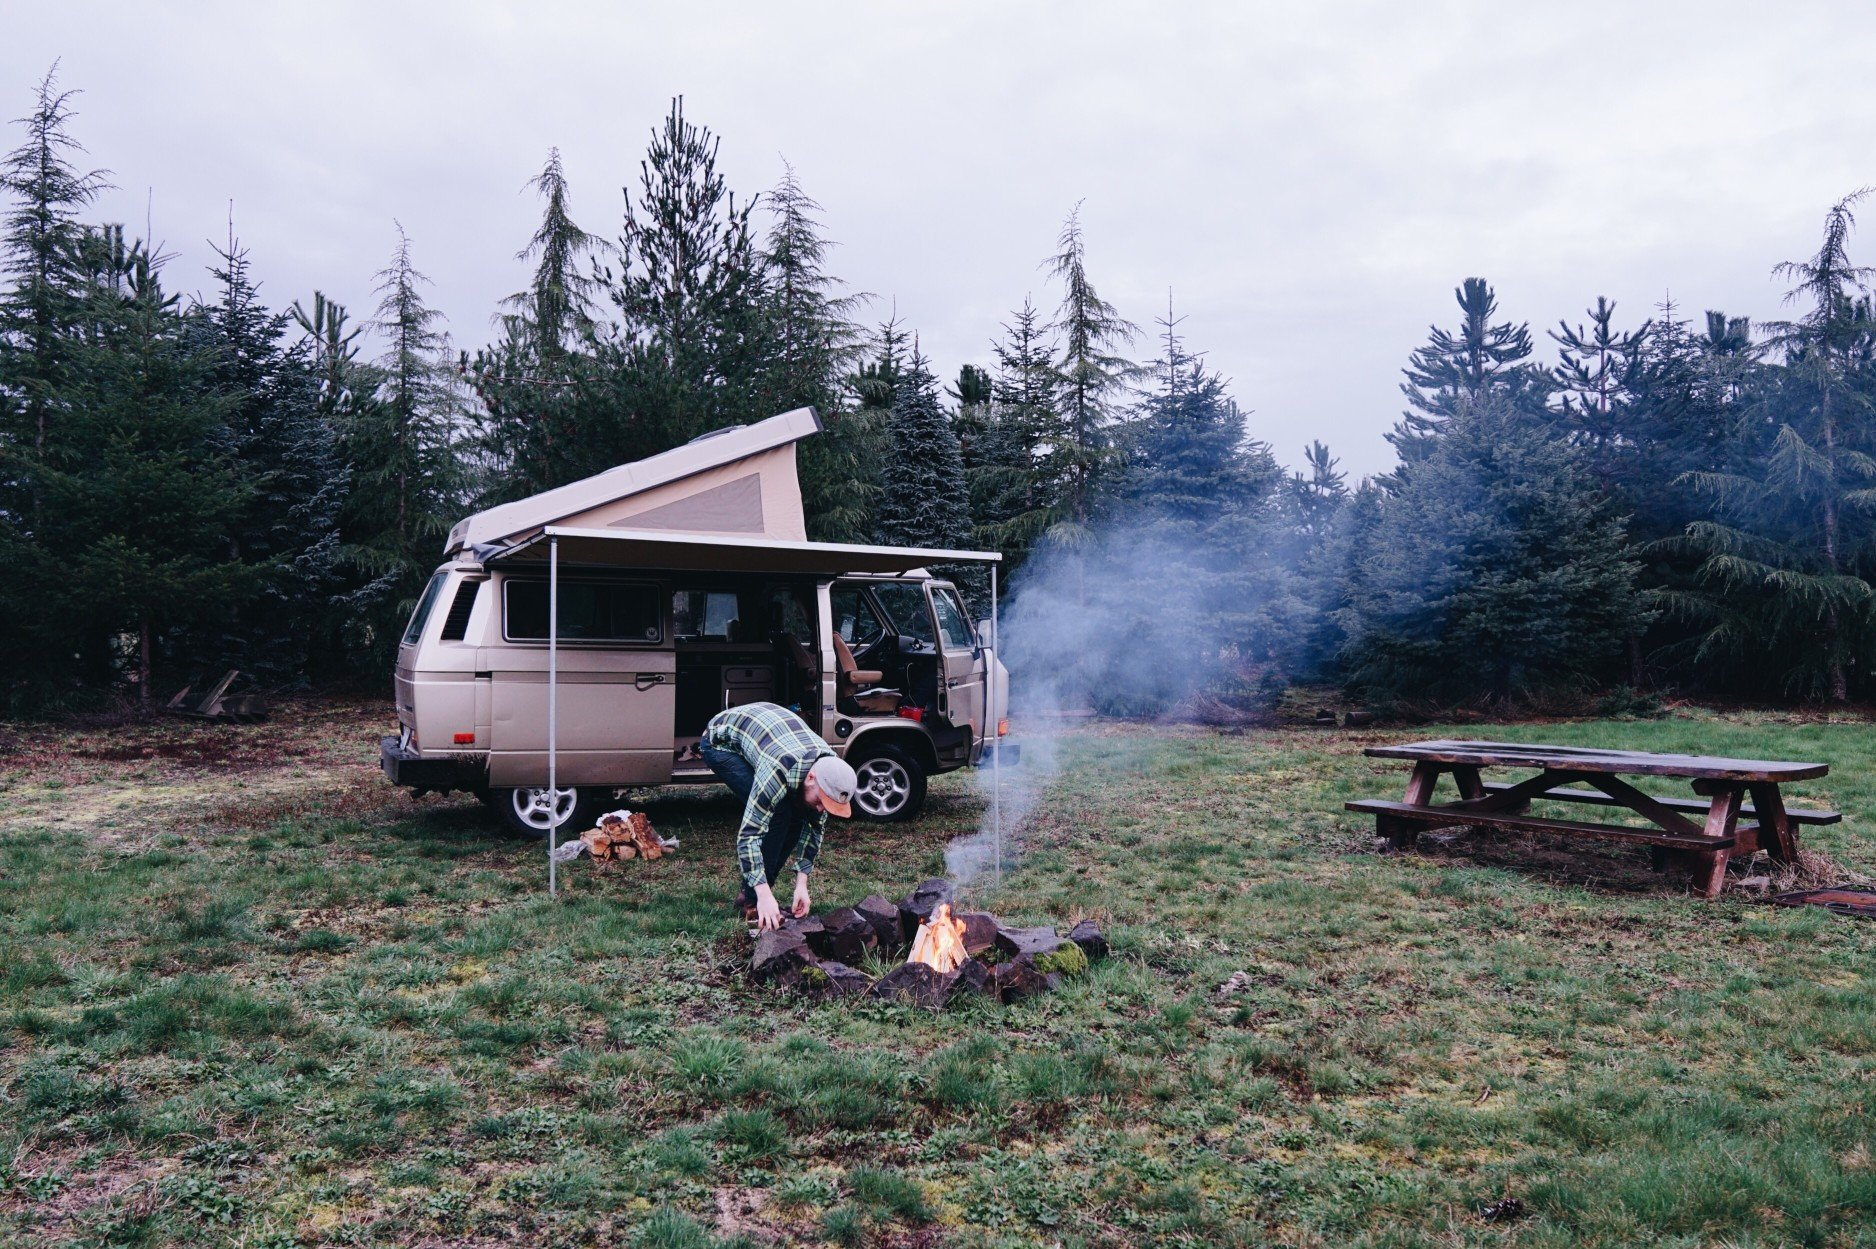 Safety vs Seclusion: Can Campers Have Both?